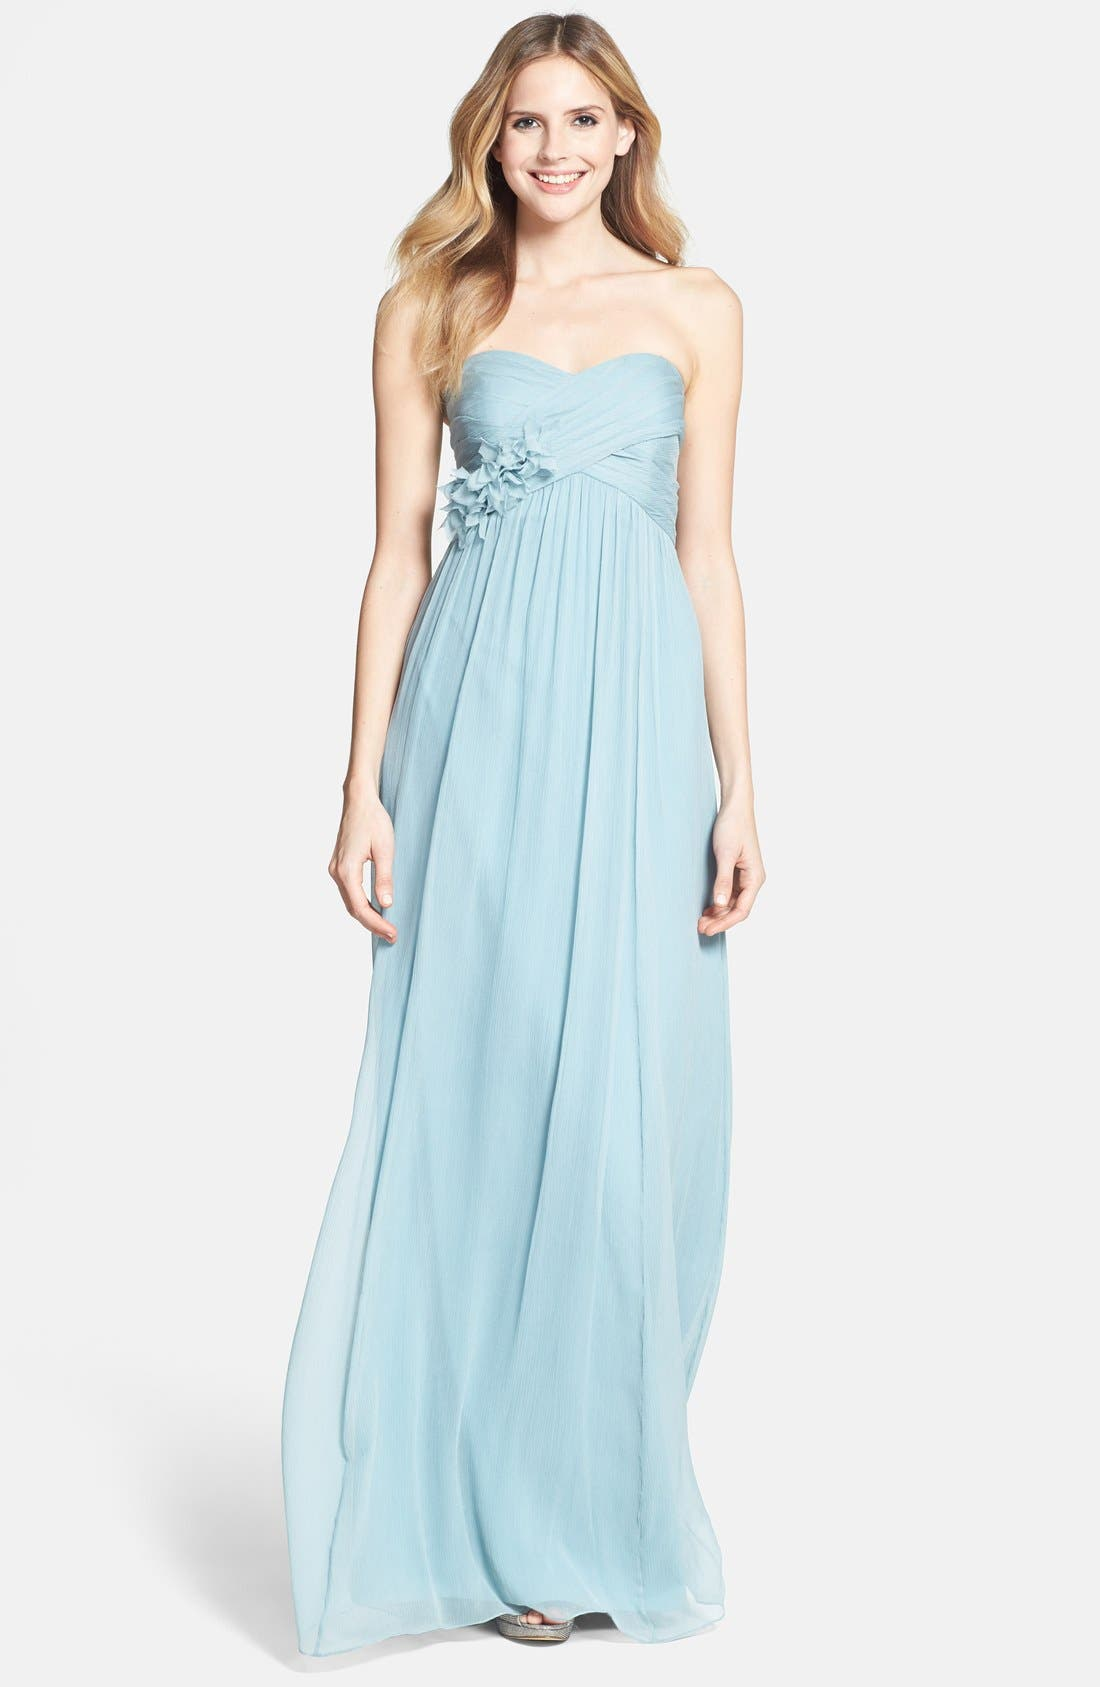 Main Image - Jenny Yoo 'Sienna' Strapless Crinkle Silk Chiffon Dress